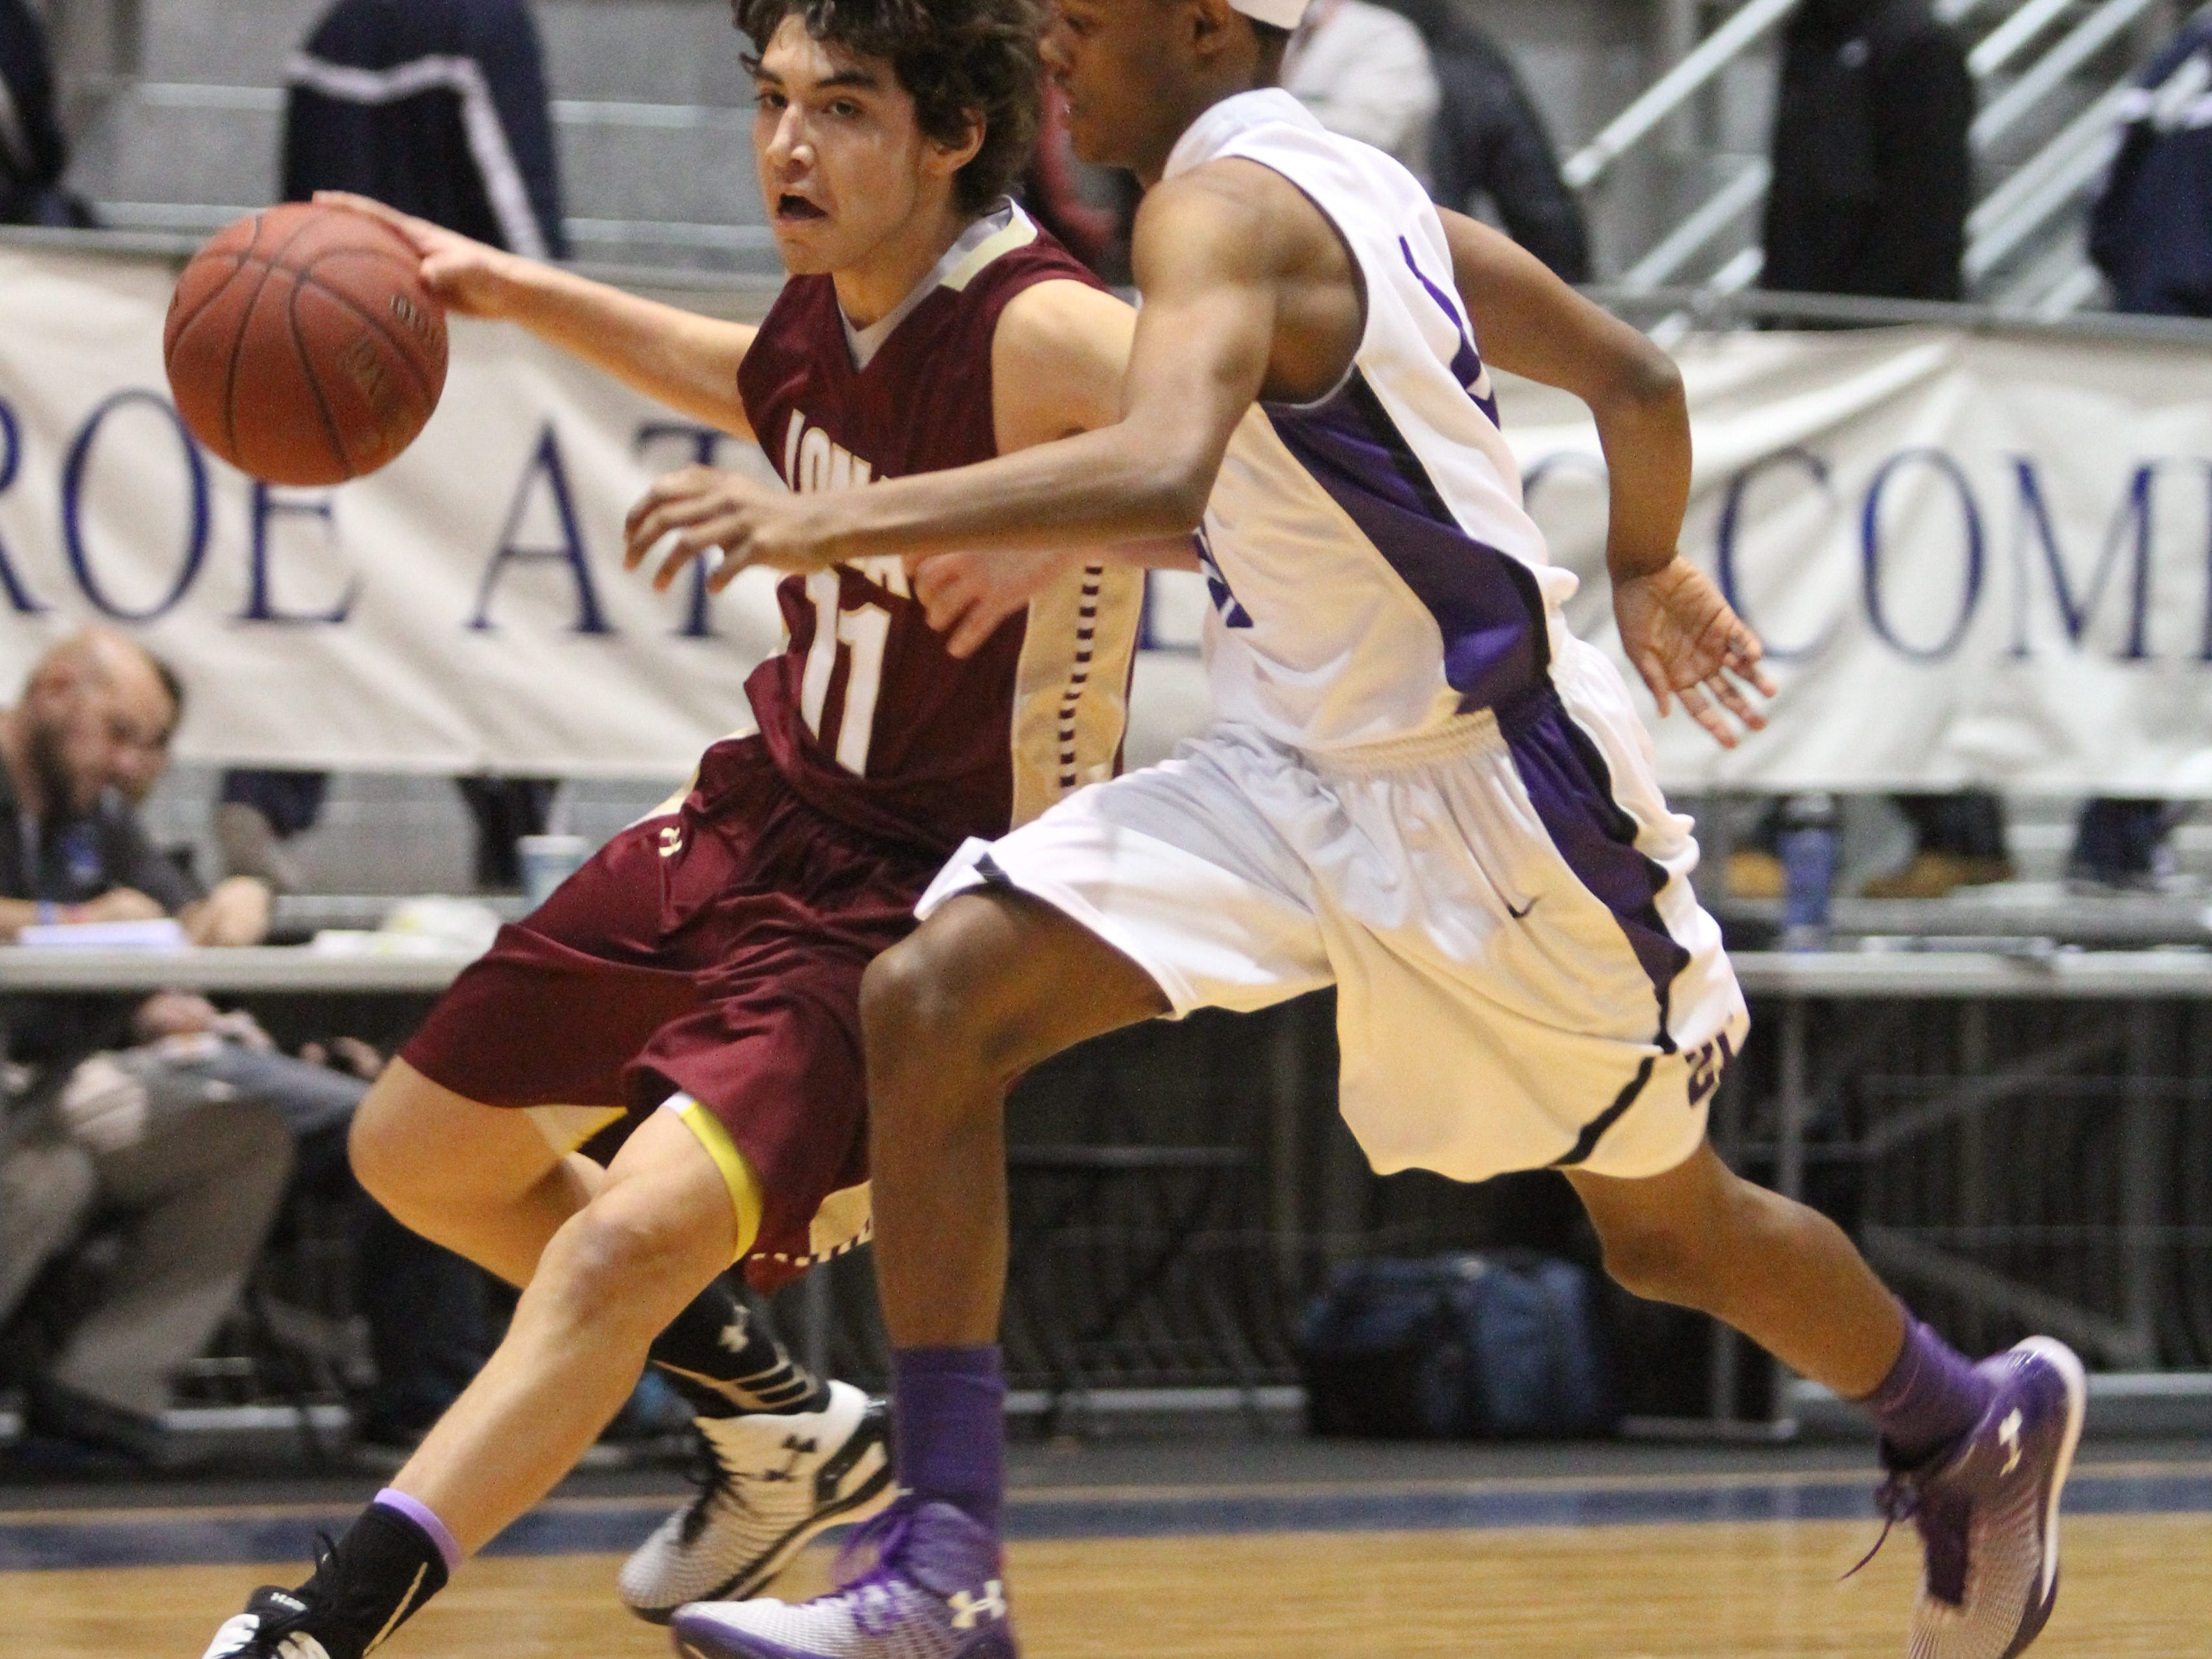 Mark Vergari/The Journal News Iona Prep's Ty Jerome drives past New Rochelle's Justin Watson during the Hoops for a Cure tournament Saturday. Iona Prep's Ty Jerome moves the ball around New Rochelle's Justin Watson during the 4th annual Hoops for a Cure basketball tournament at the Monroe Athletic Complex in New Rochelle, Jan. 10, 2015.